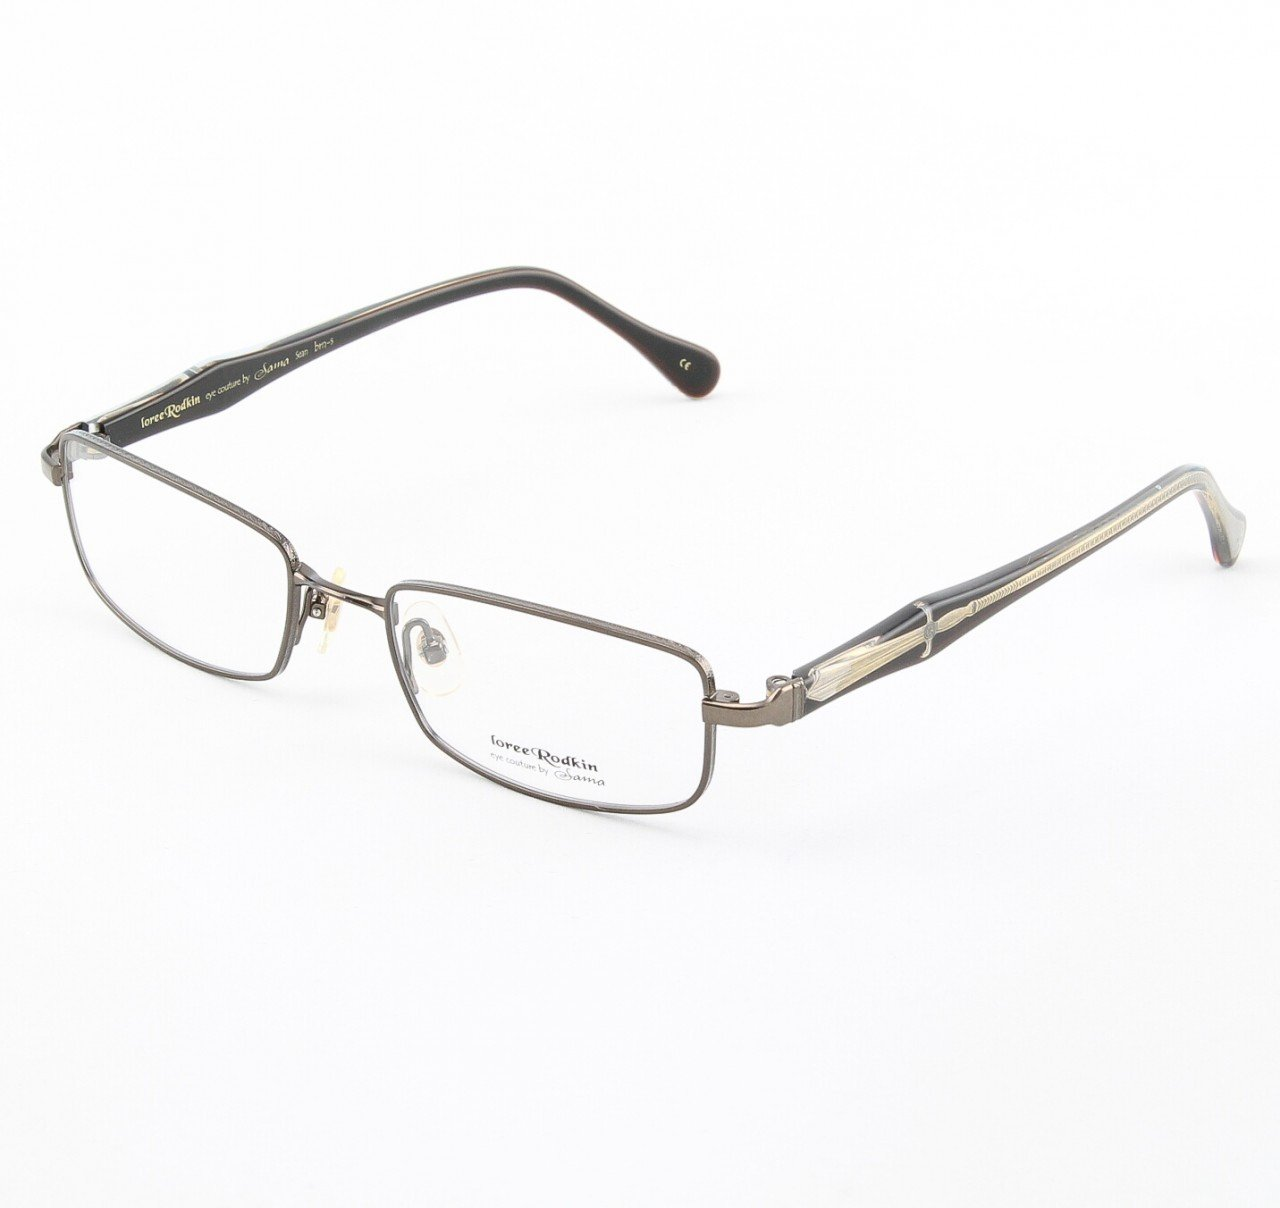 Loree Rodkin Sean Eyeglasses by Sama Col. Brown with Clear Lenses and Decorative Temple Core